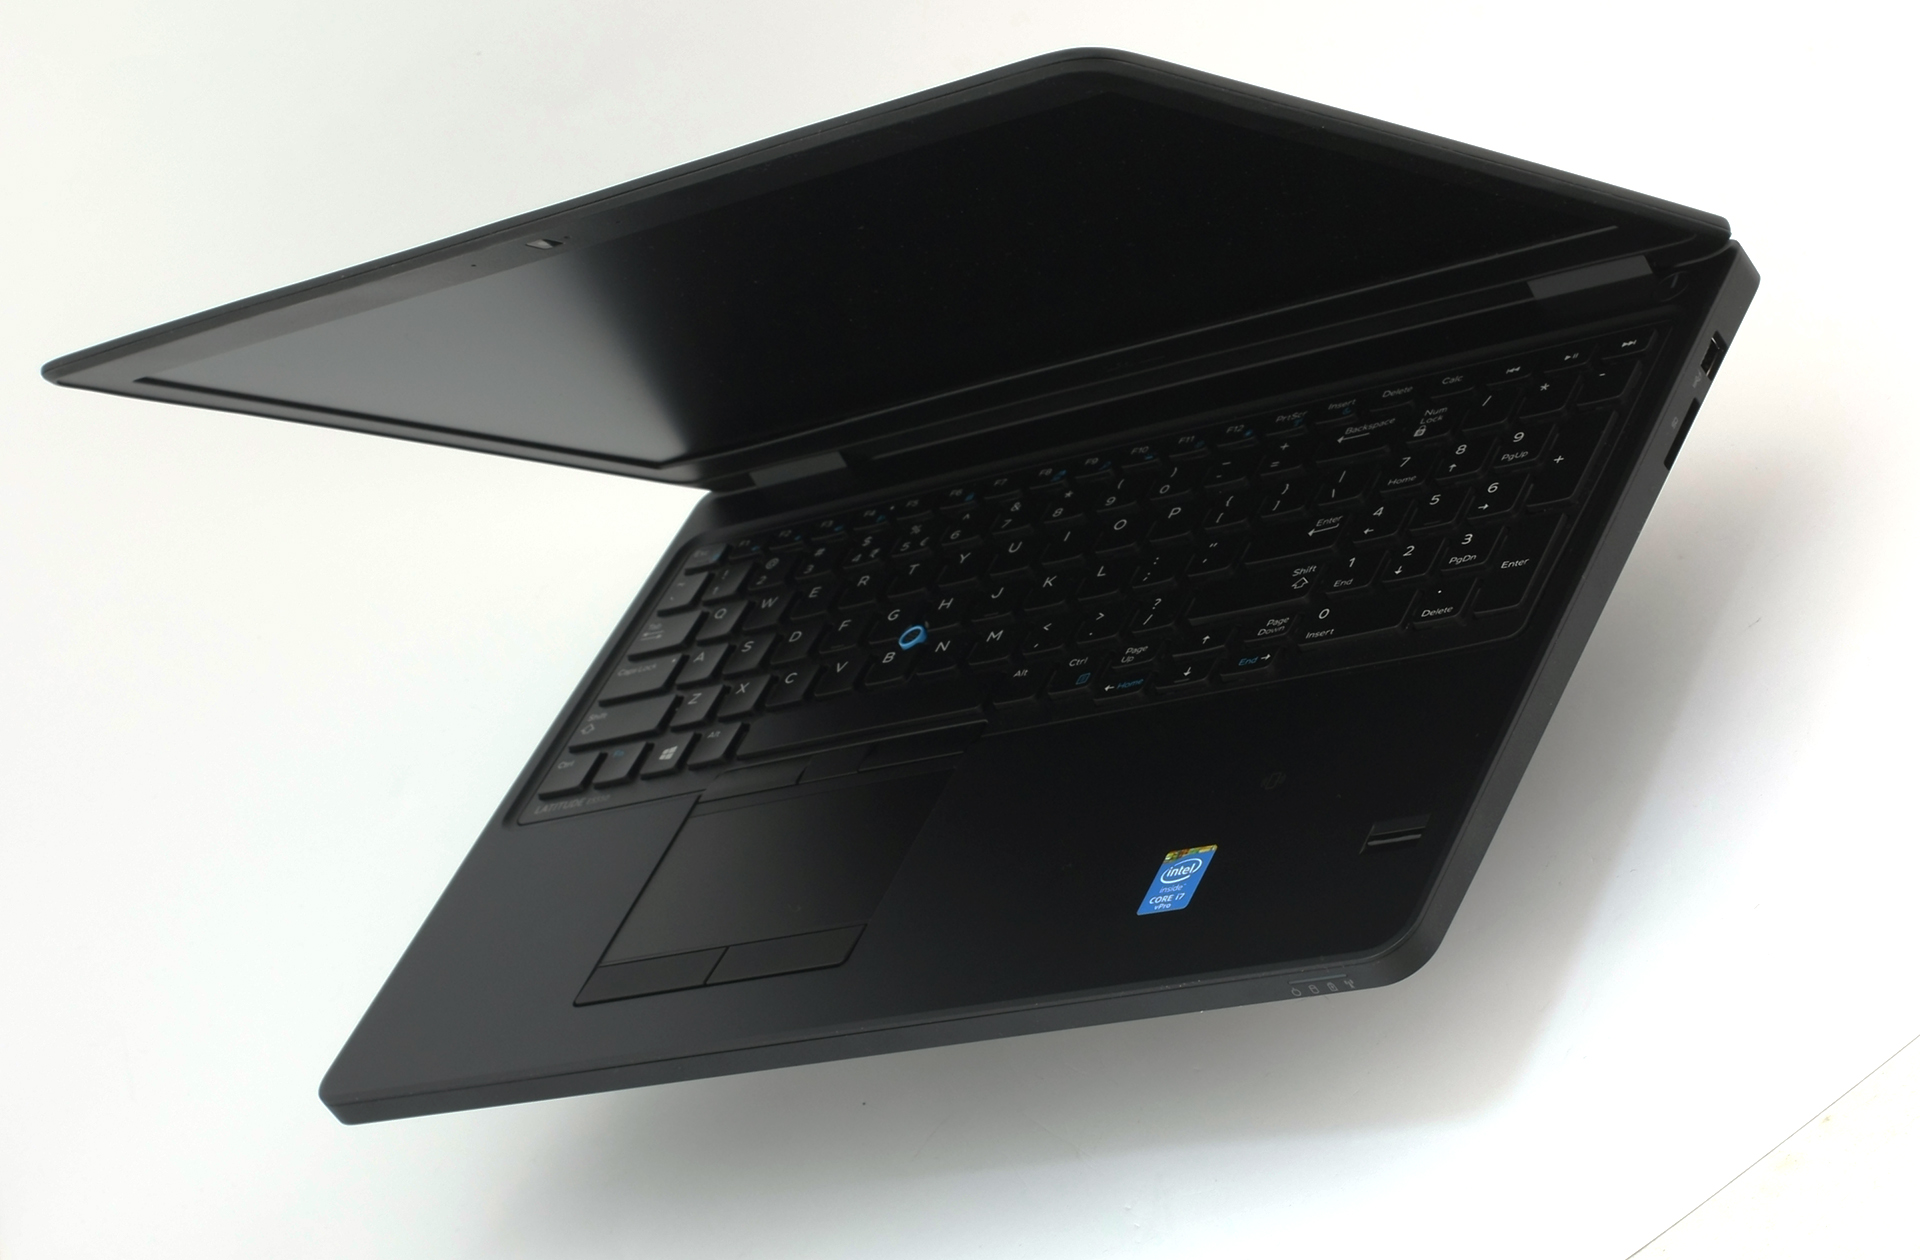 Dell Latitude E5550 review – Dell's secret weapon to take down the